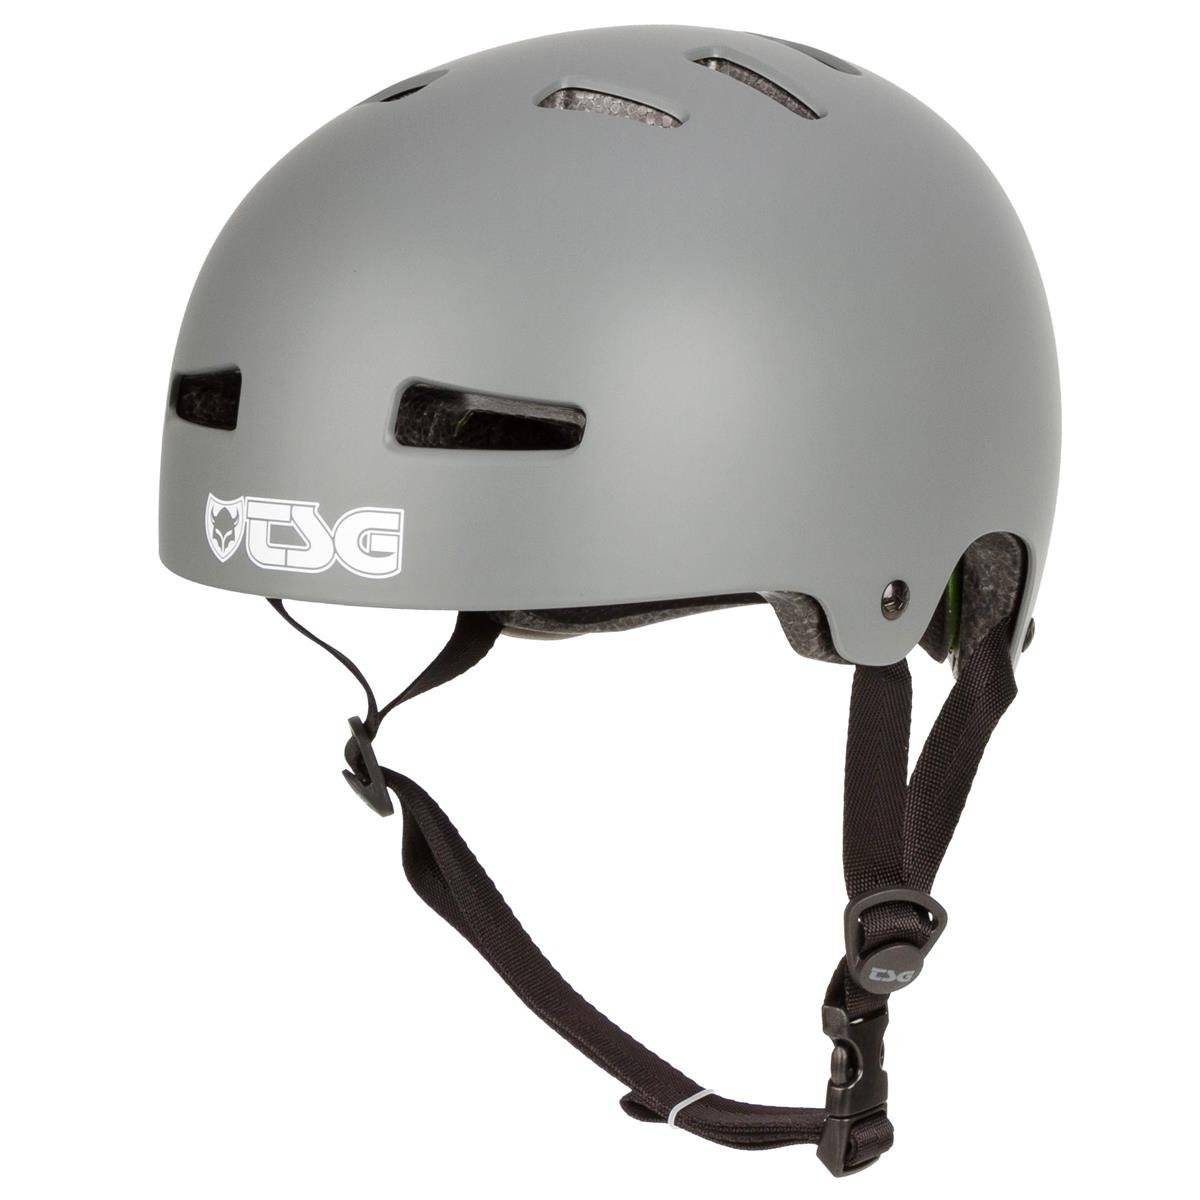 TSG Casco BMX/Dirt Evolution